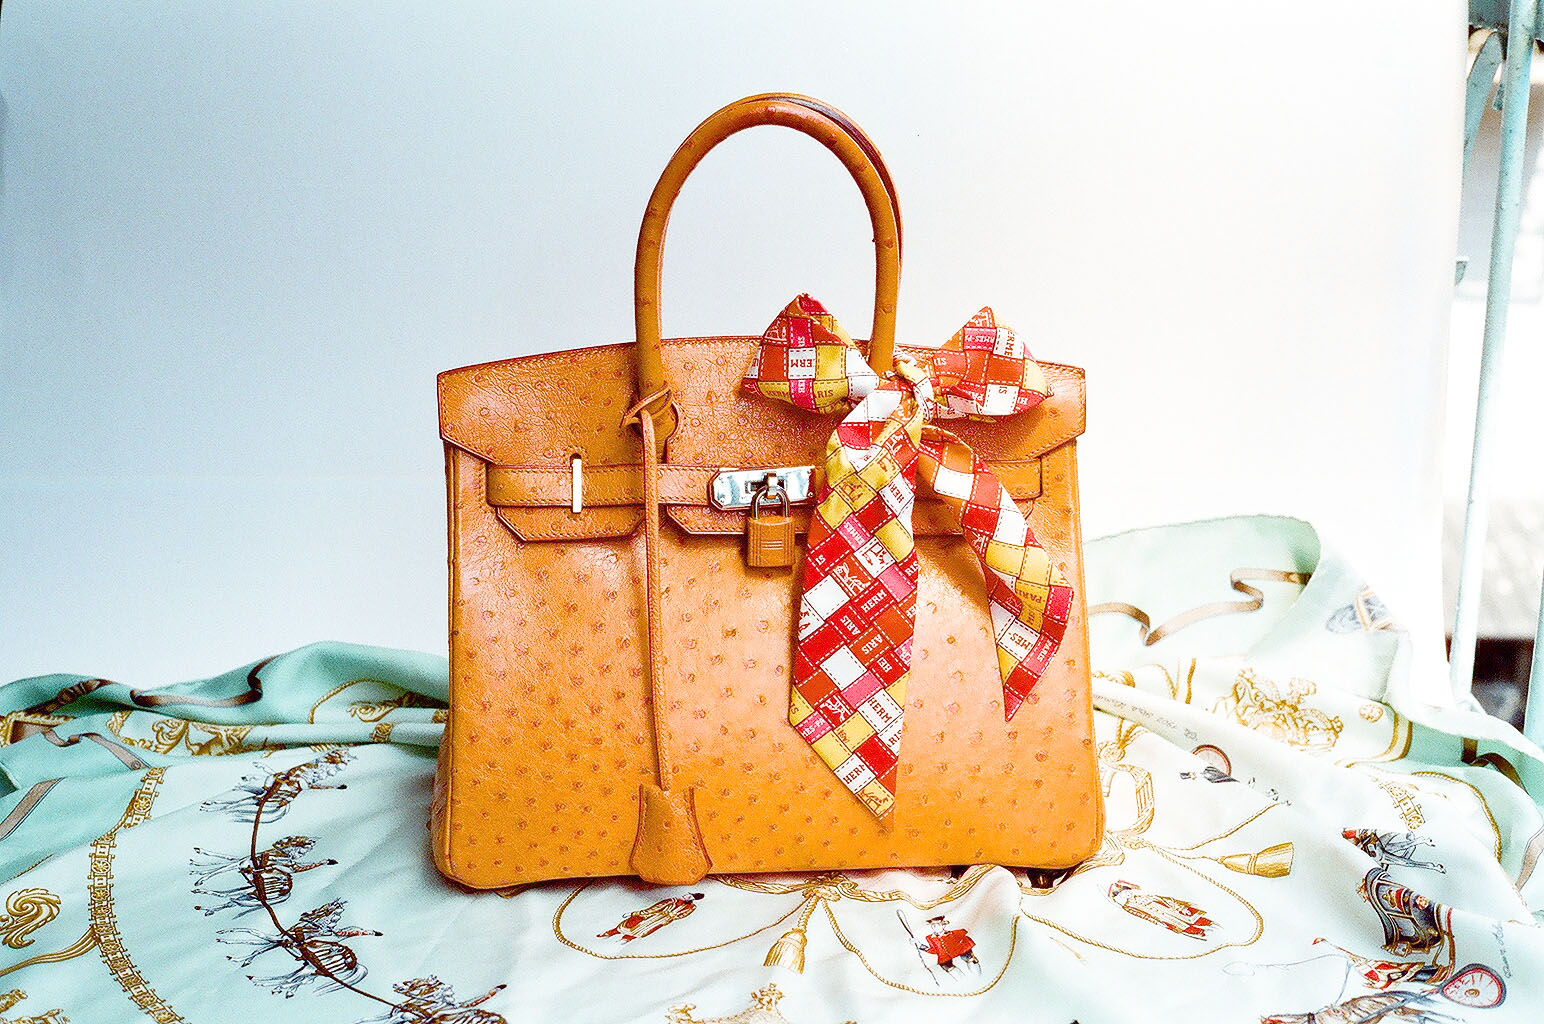 birkin bag outlet - Birkin bag - Wikipedia, the free encyclopedia